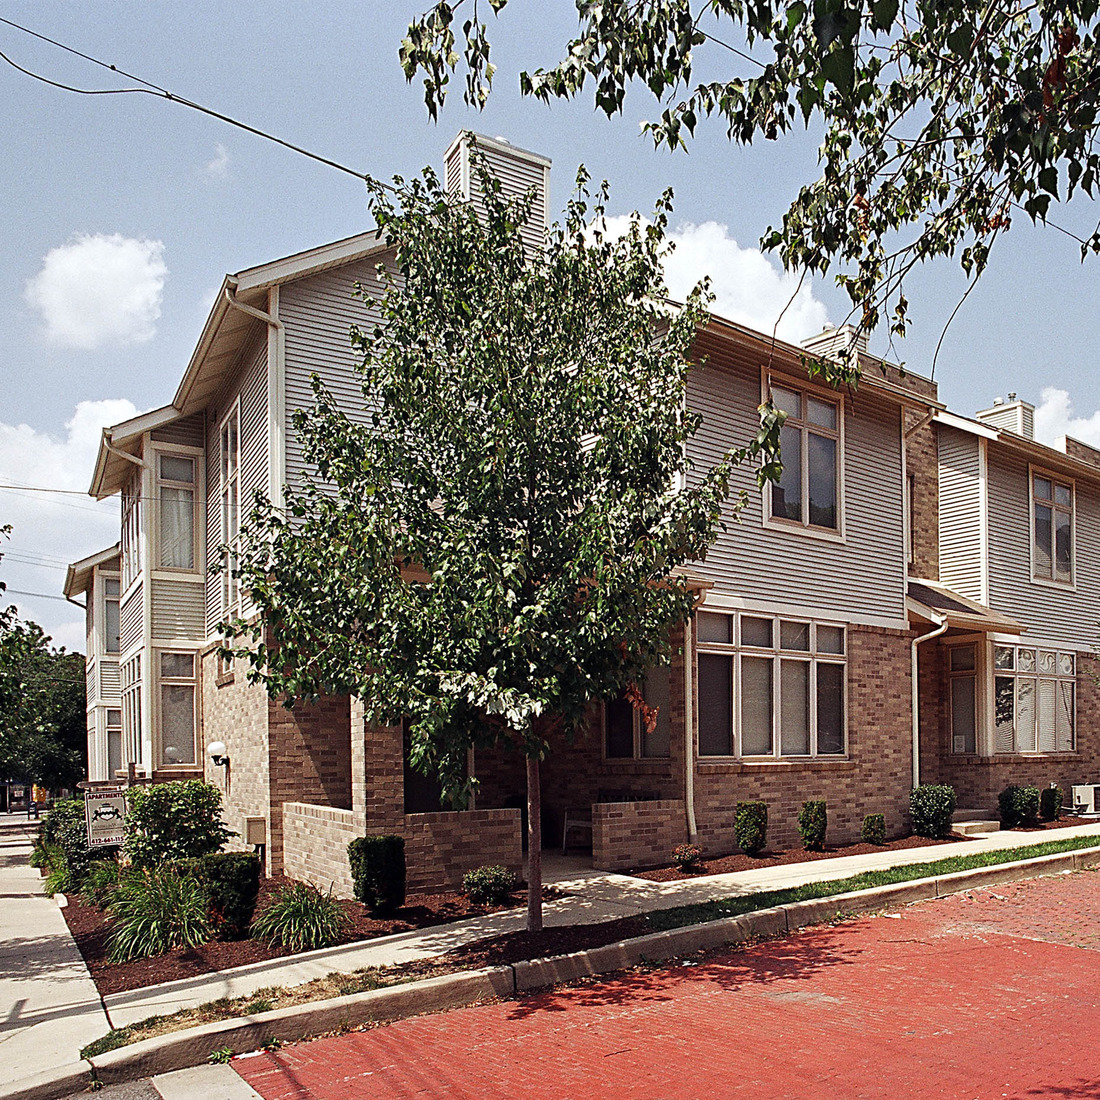 Shadyside Apartments: Alder Townhouses